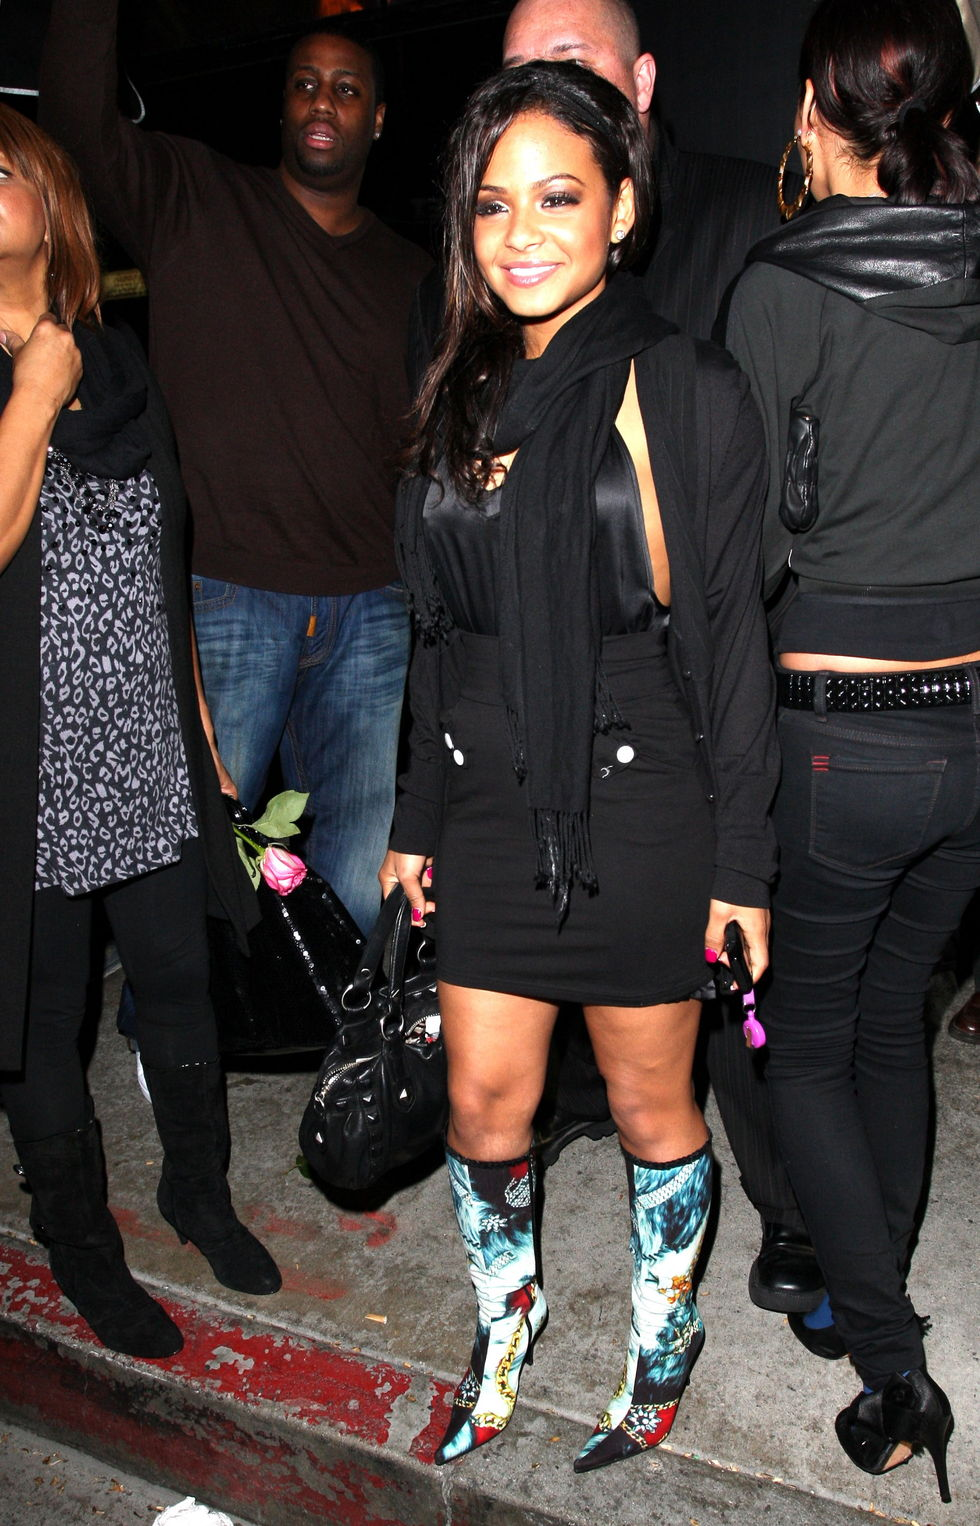 christina-milian-at-deluxe-nightclub-01